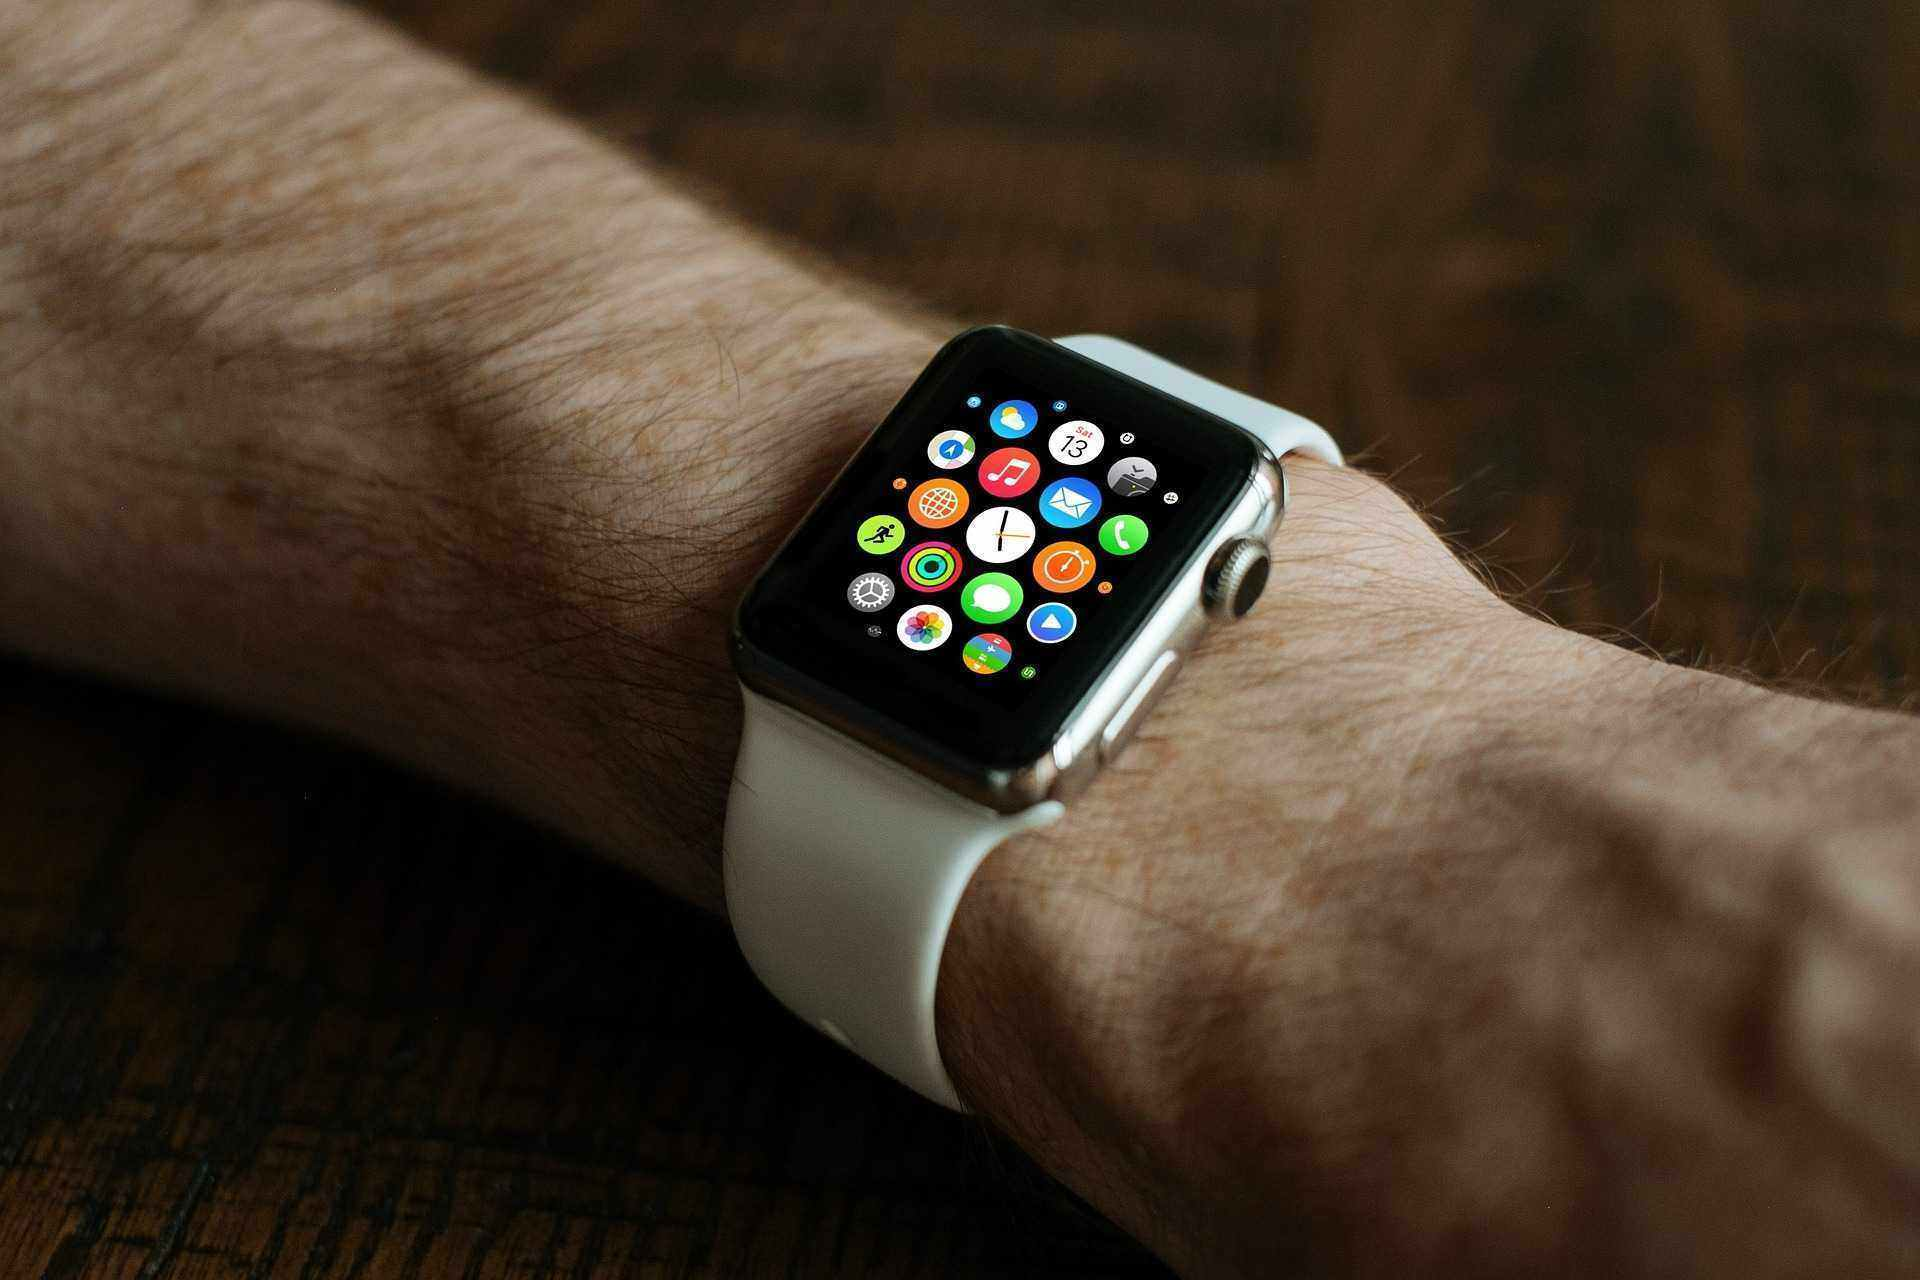 Modèles d'Apple Watch au catalogue 2019